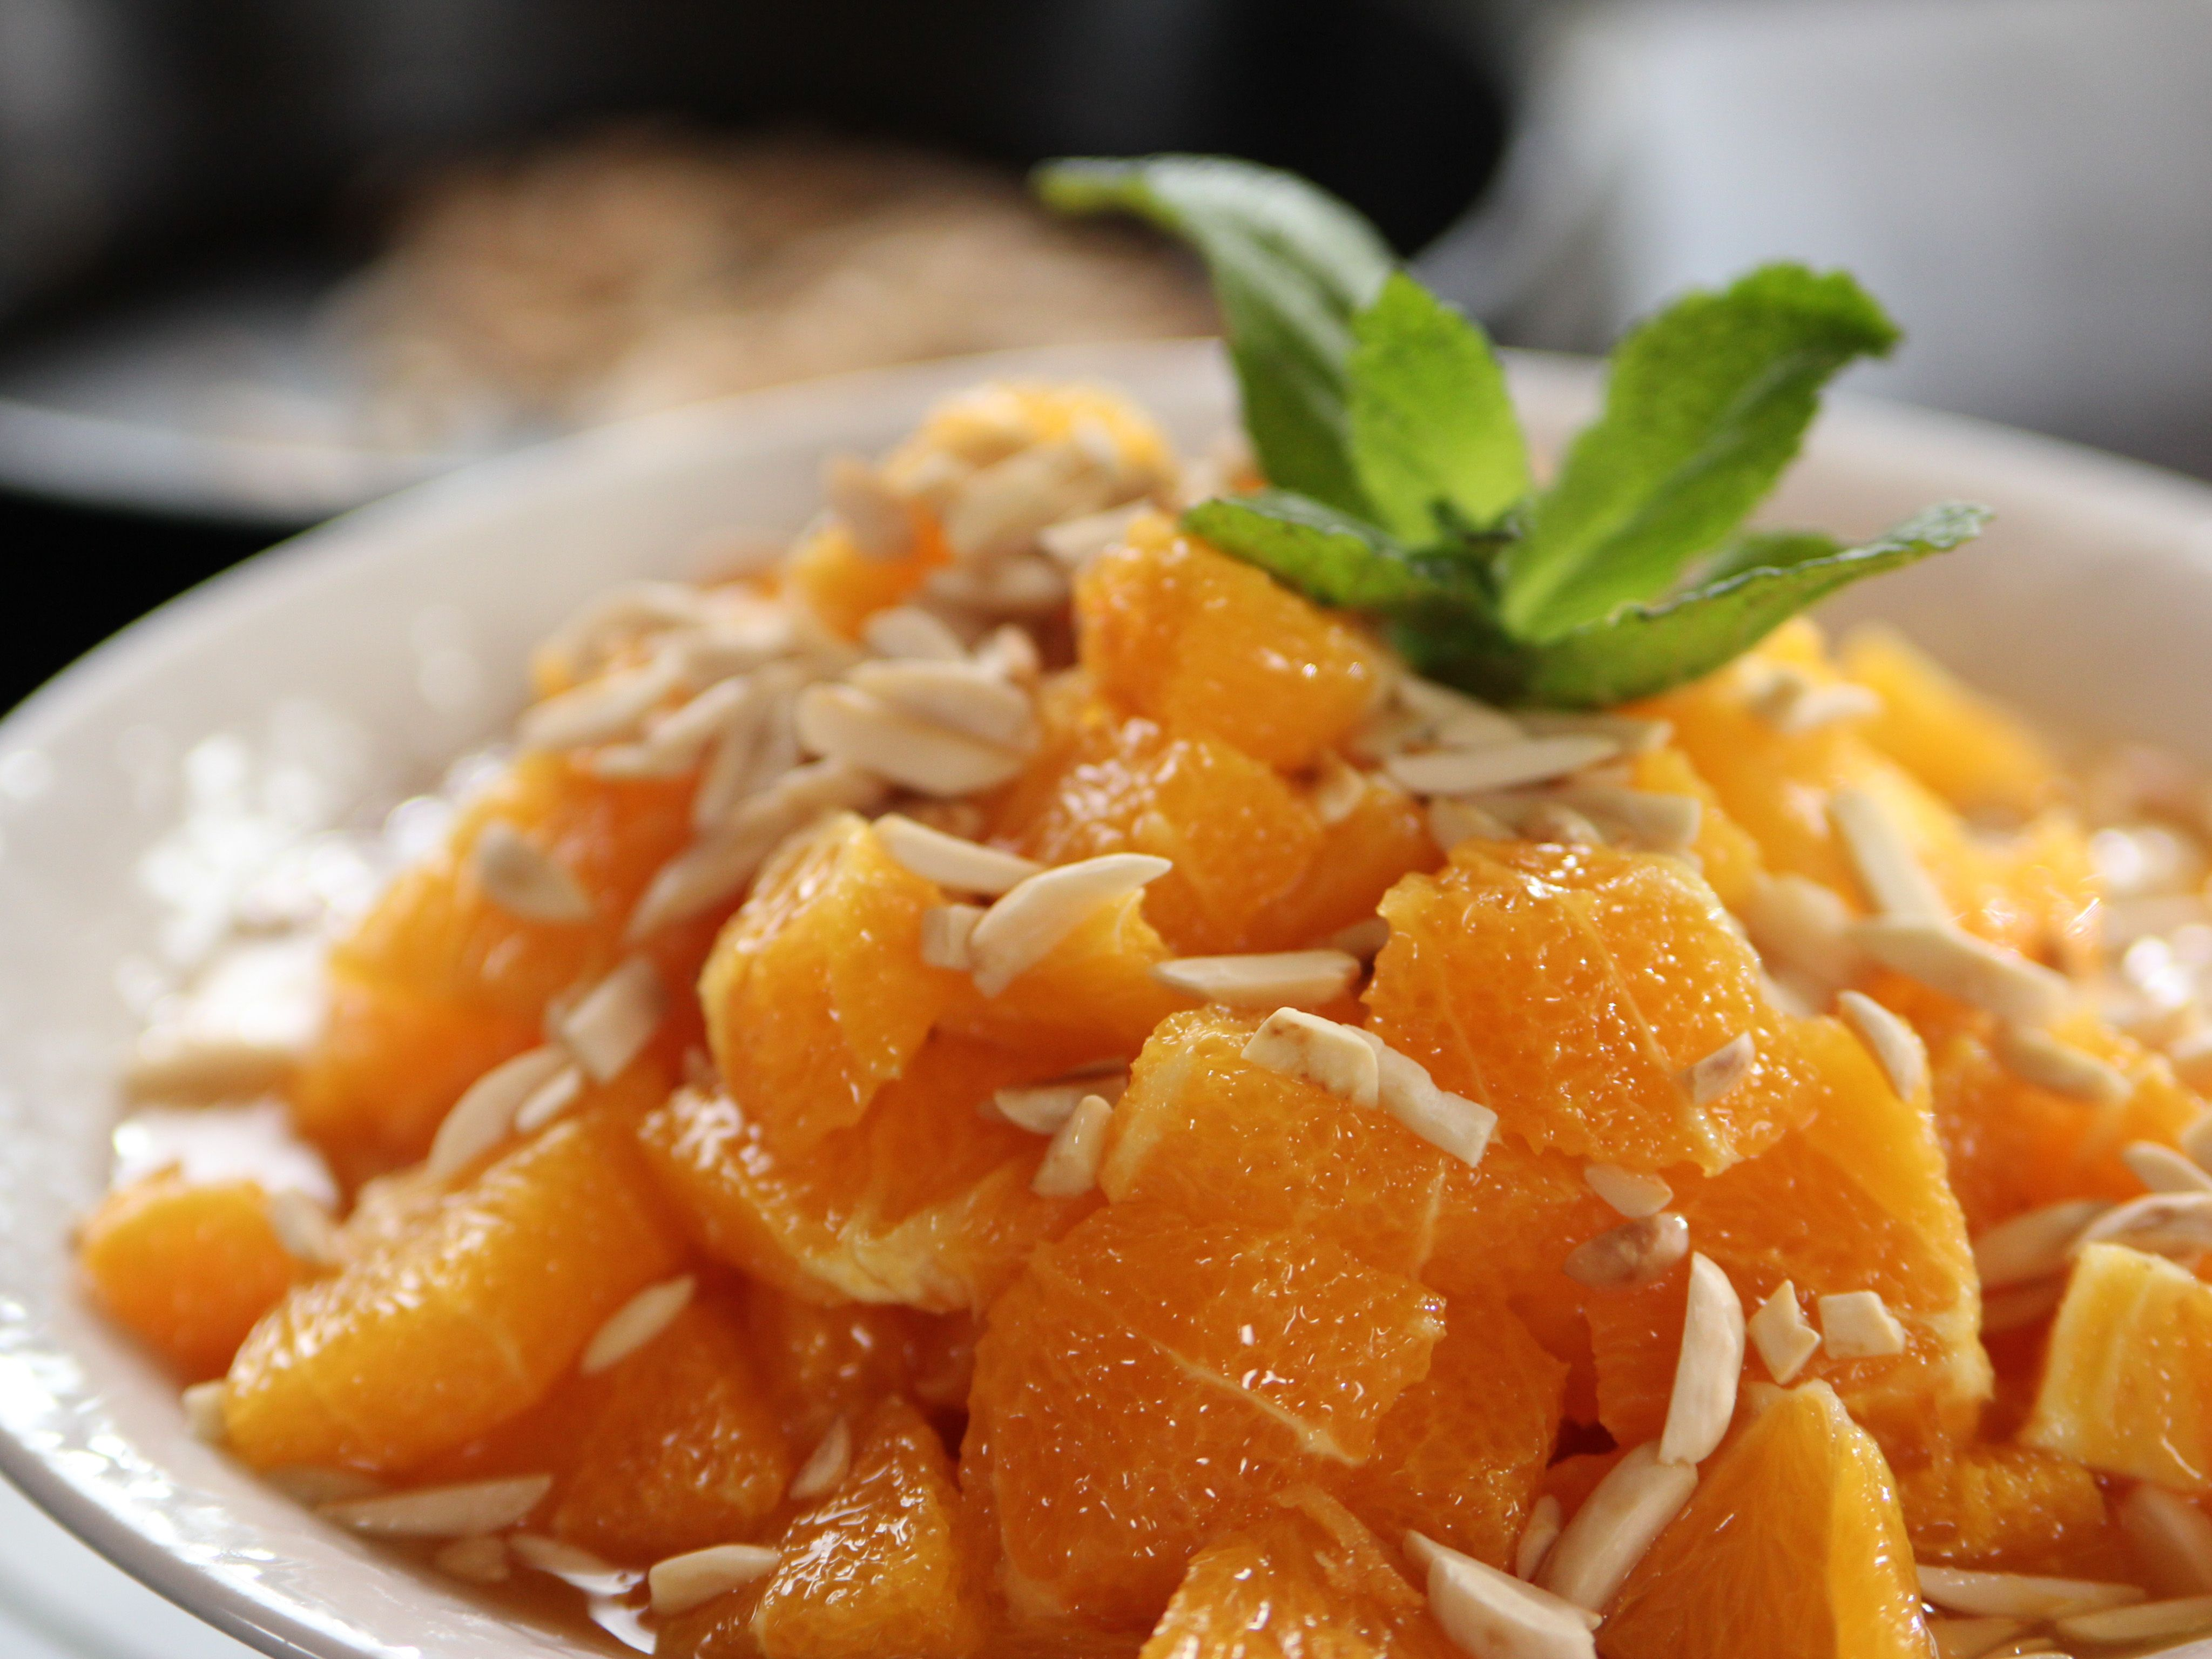 Champagne oranges recipe orange recipes grape juice and champagne champagne oranges pioneer woman food networkthe forumfinder Image collections